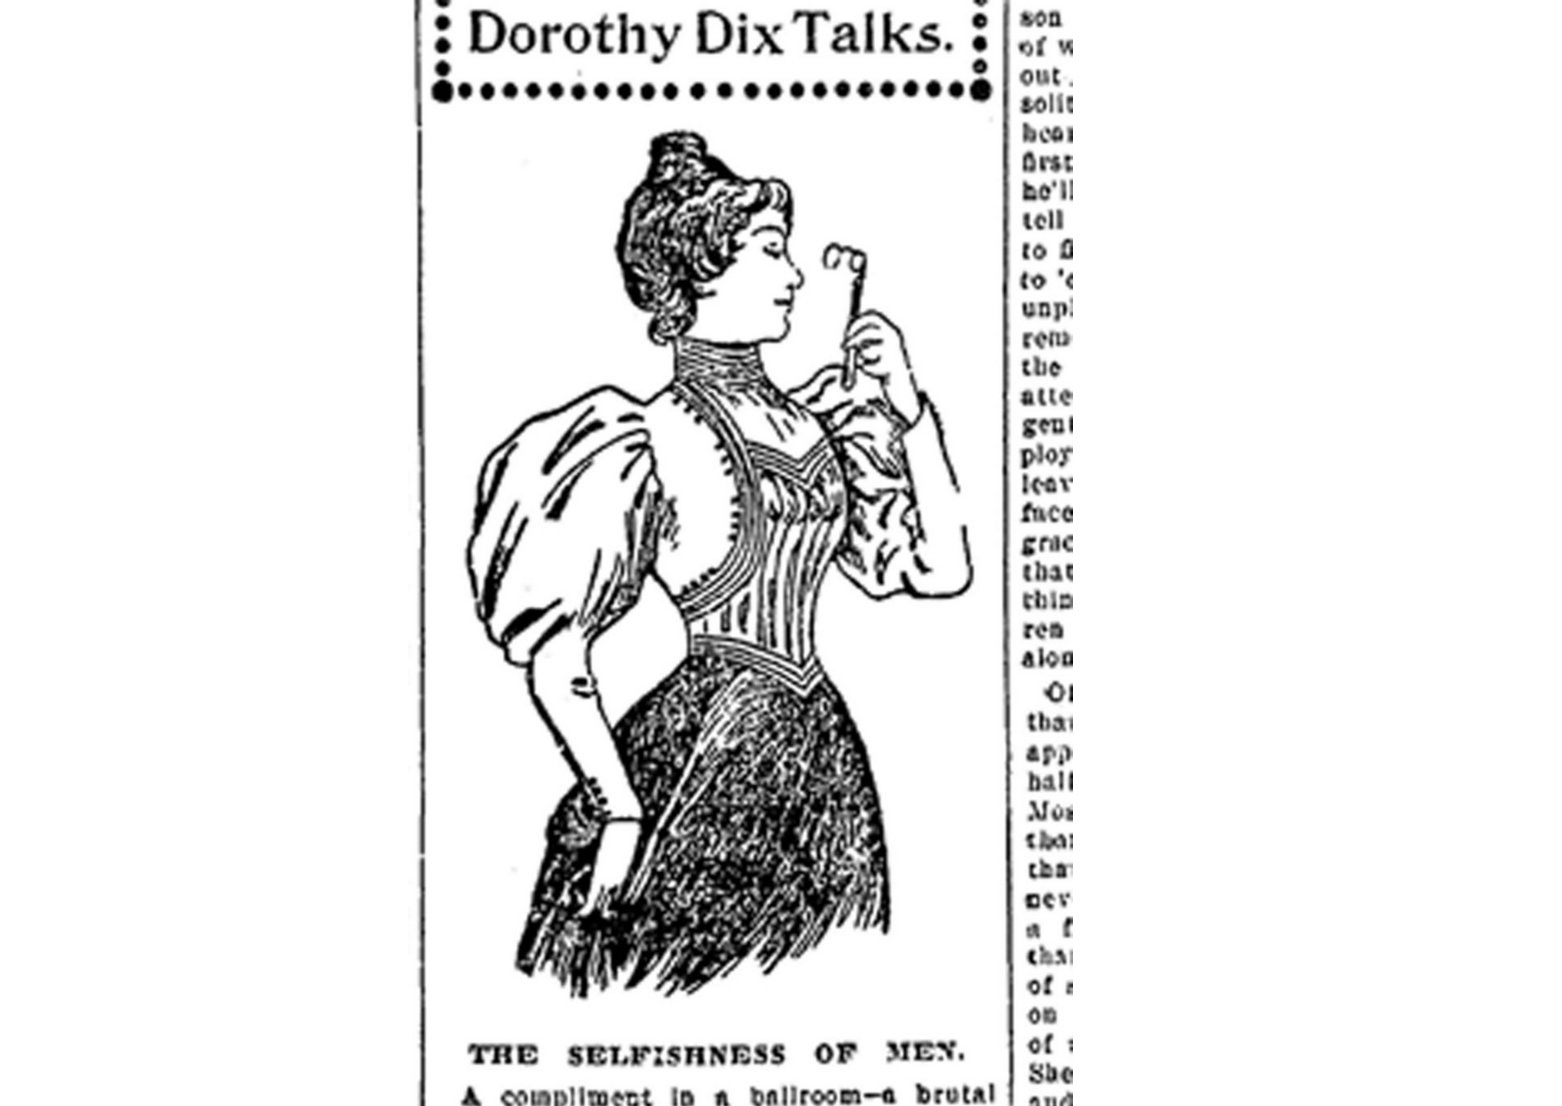 Dorothy_Dix_1898_The_Selfishness_of_Men.jpg